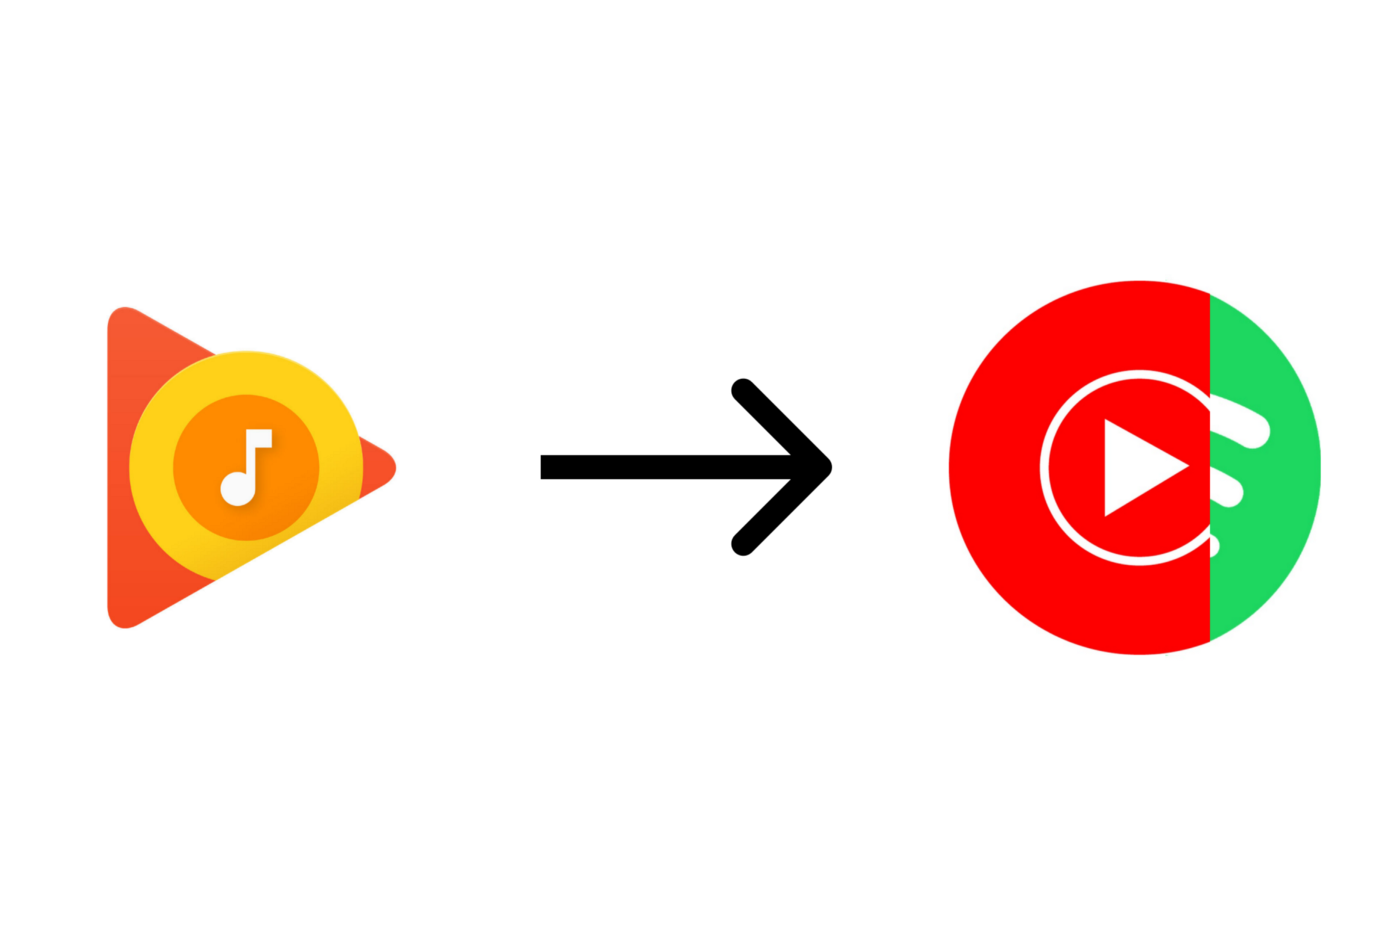 Google play music icon with an arrow pointing to Youtube Music's logo with the Spotify logo being revealed behind it